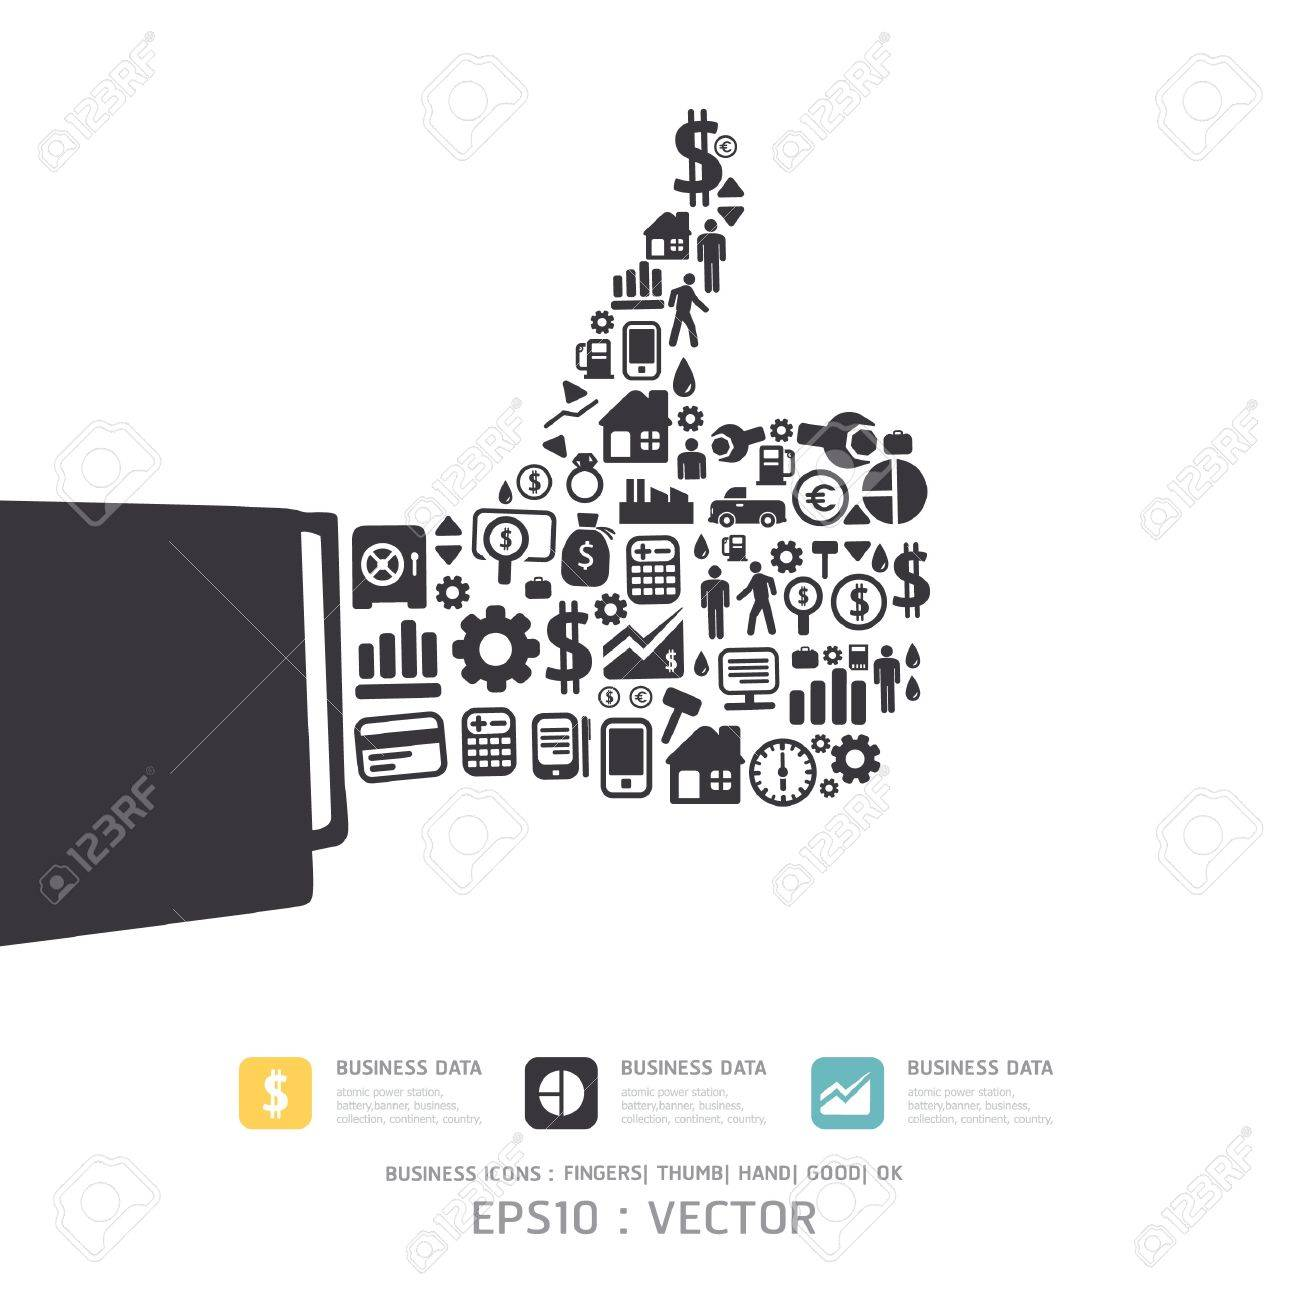 Elements are small icons Finance make in fingers shape good  ok  Vector illustration Stock Vector - 15534192